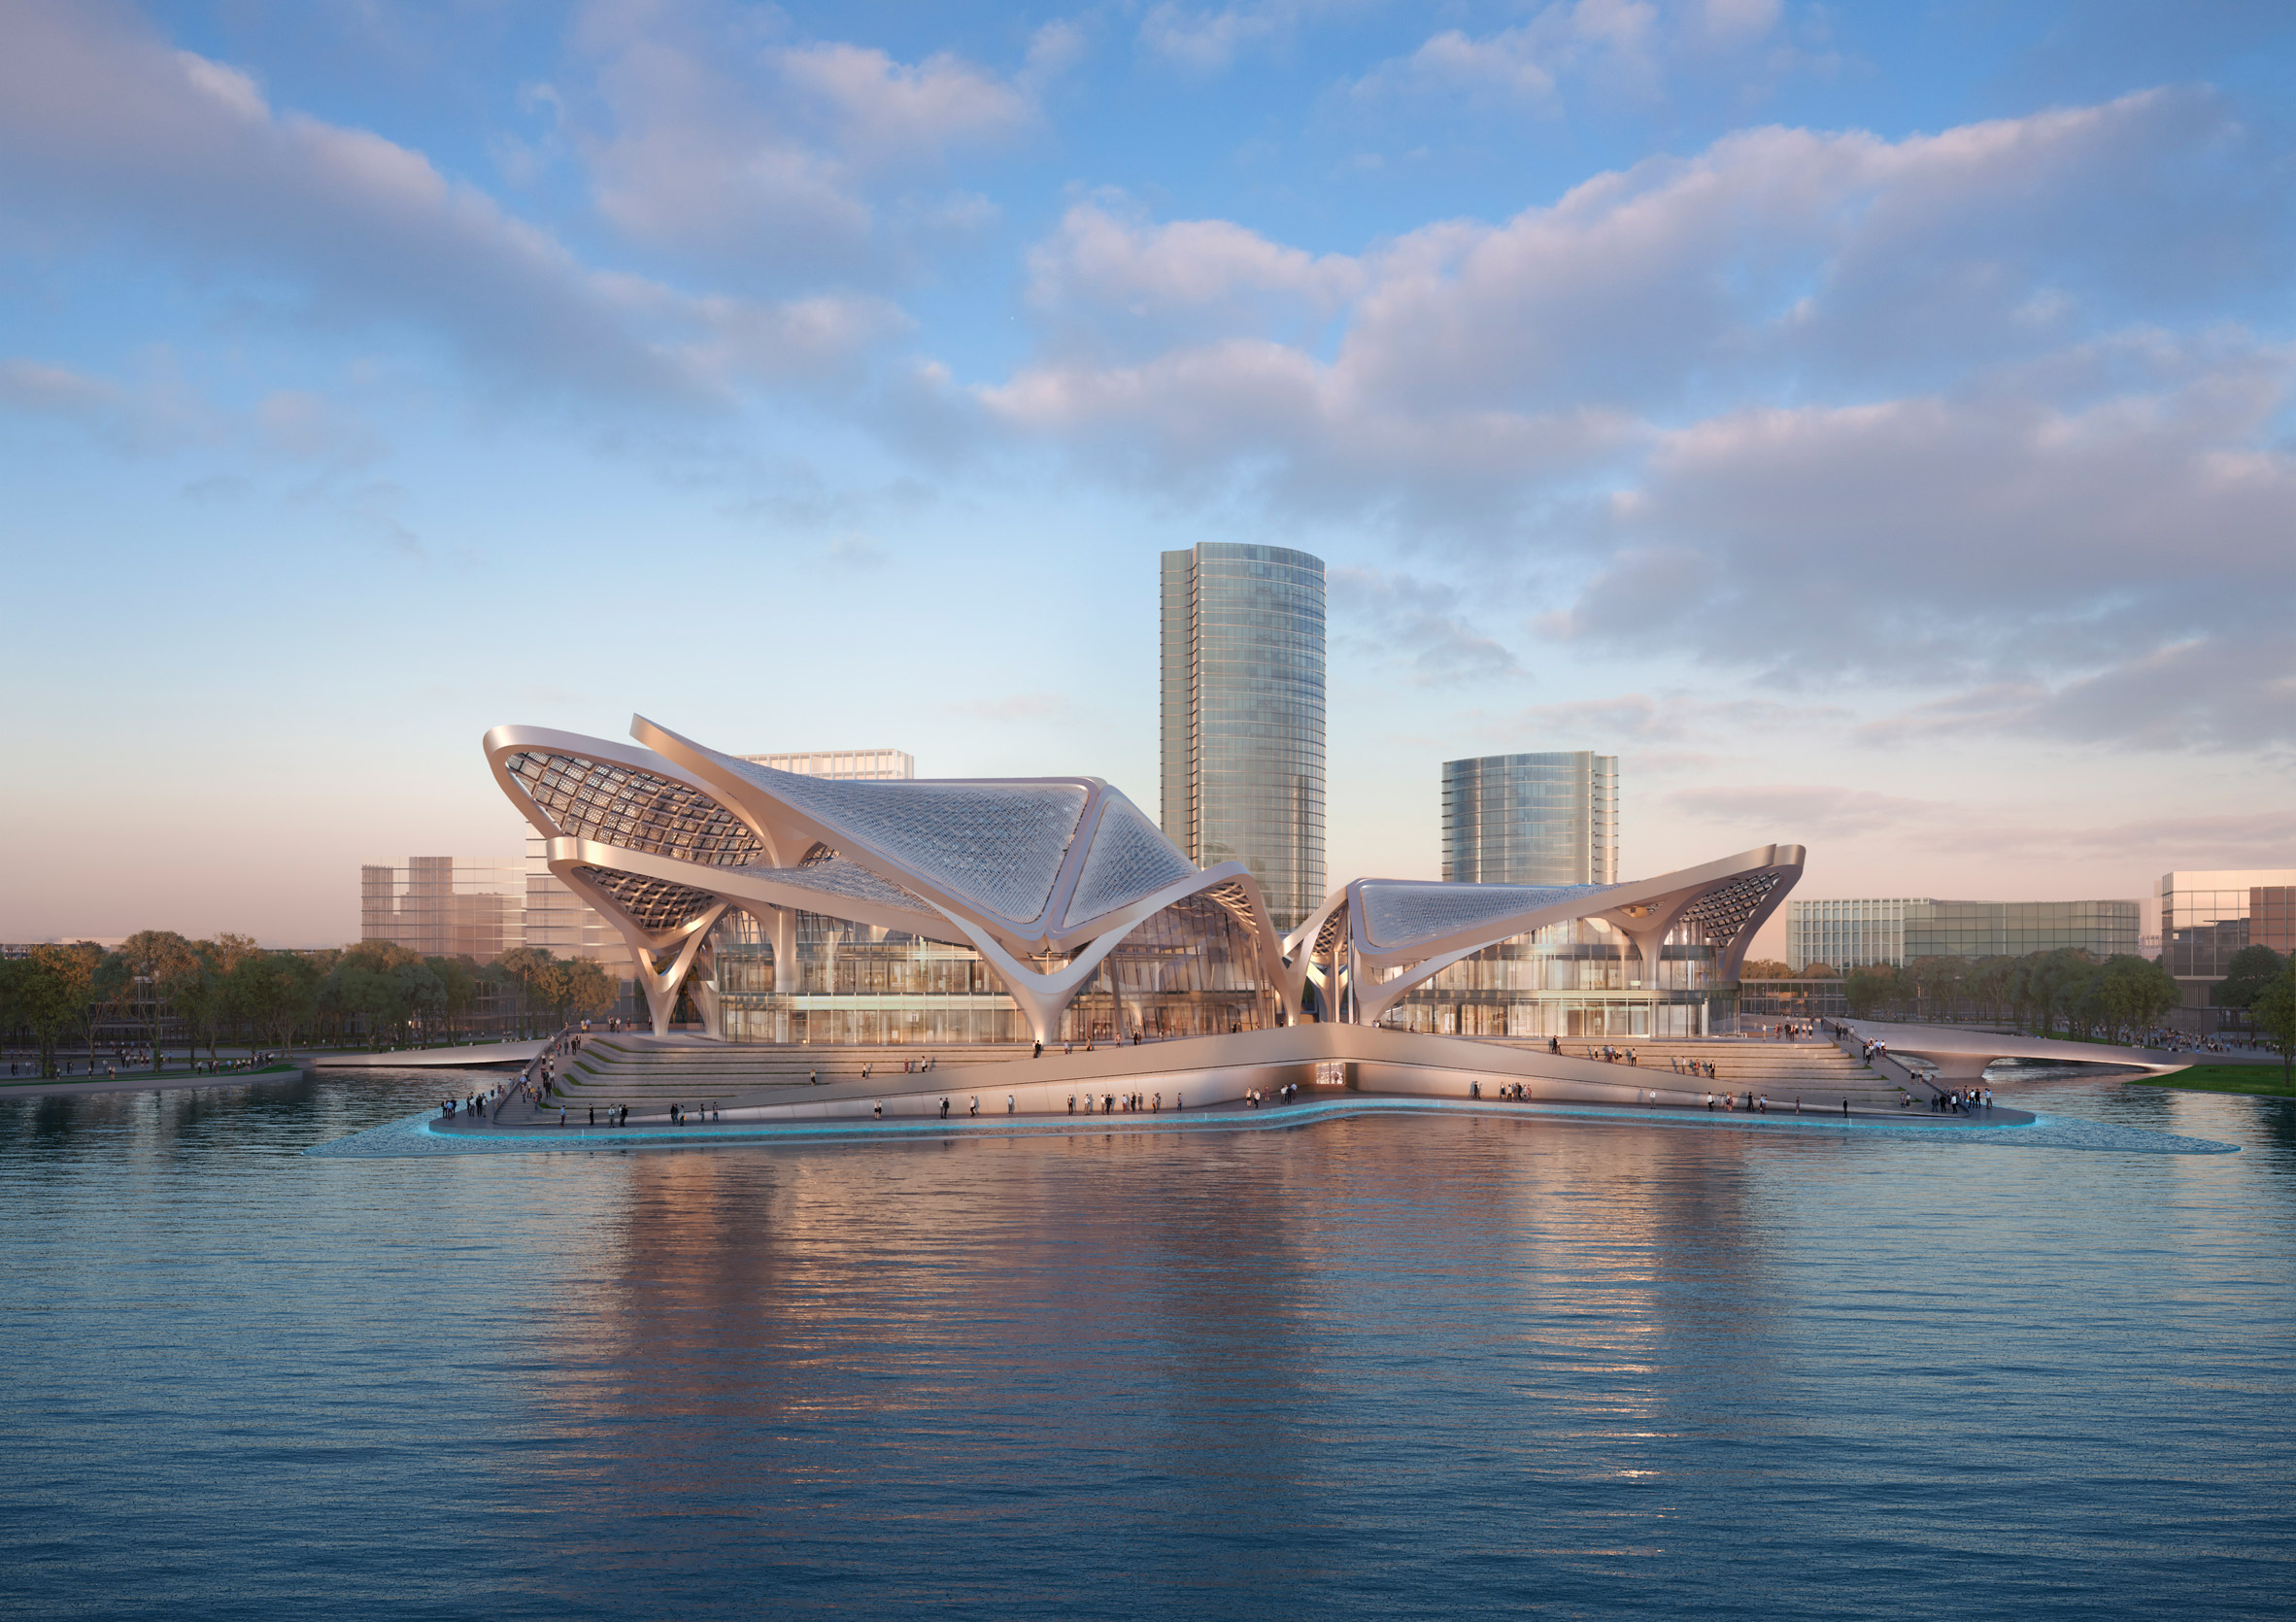 A lakecultural centre by Zaha Hadid Architects in southern China